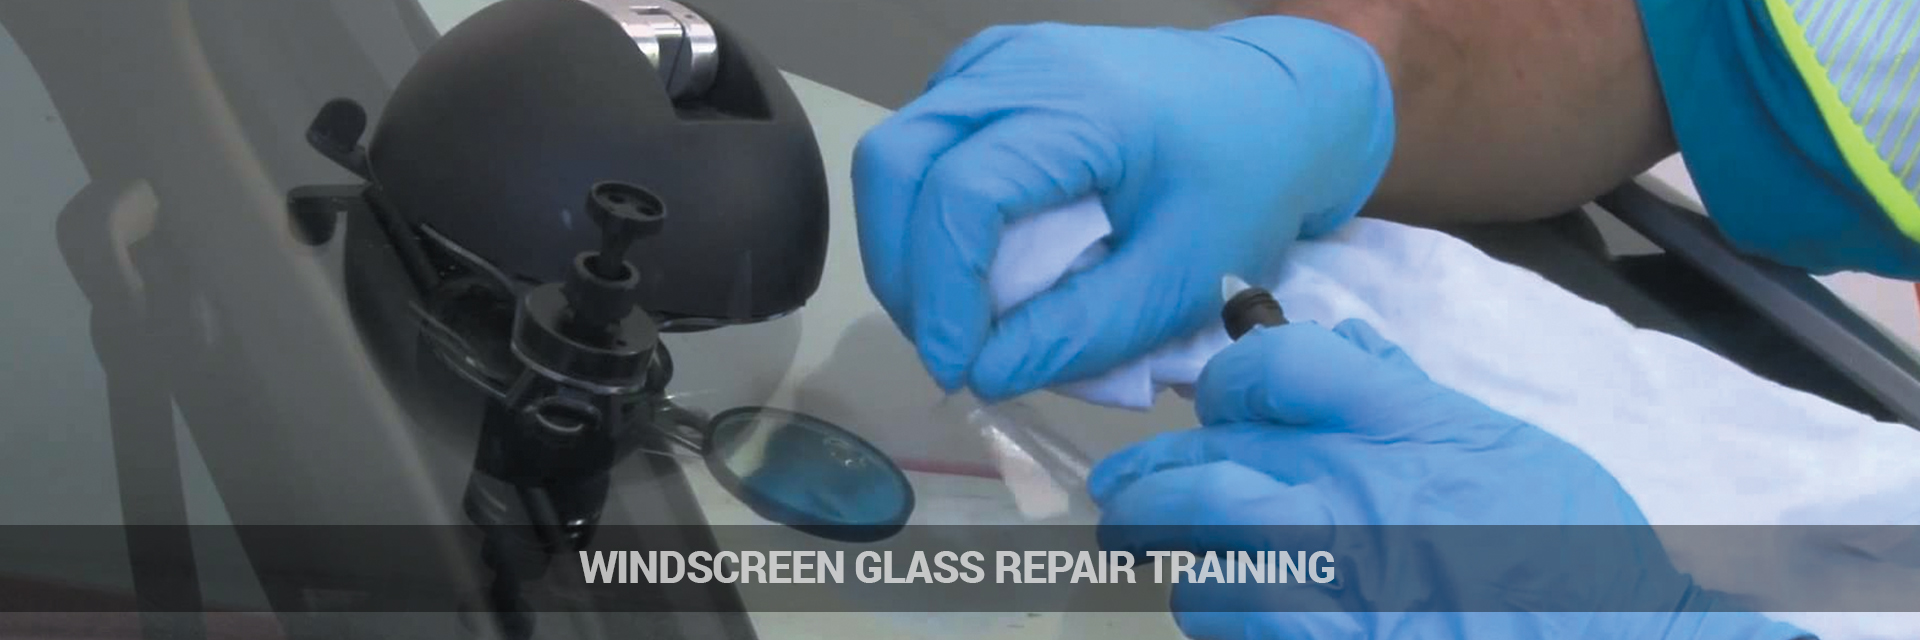 Ayce Systems windscreen and glass repair training courses